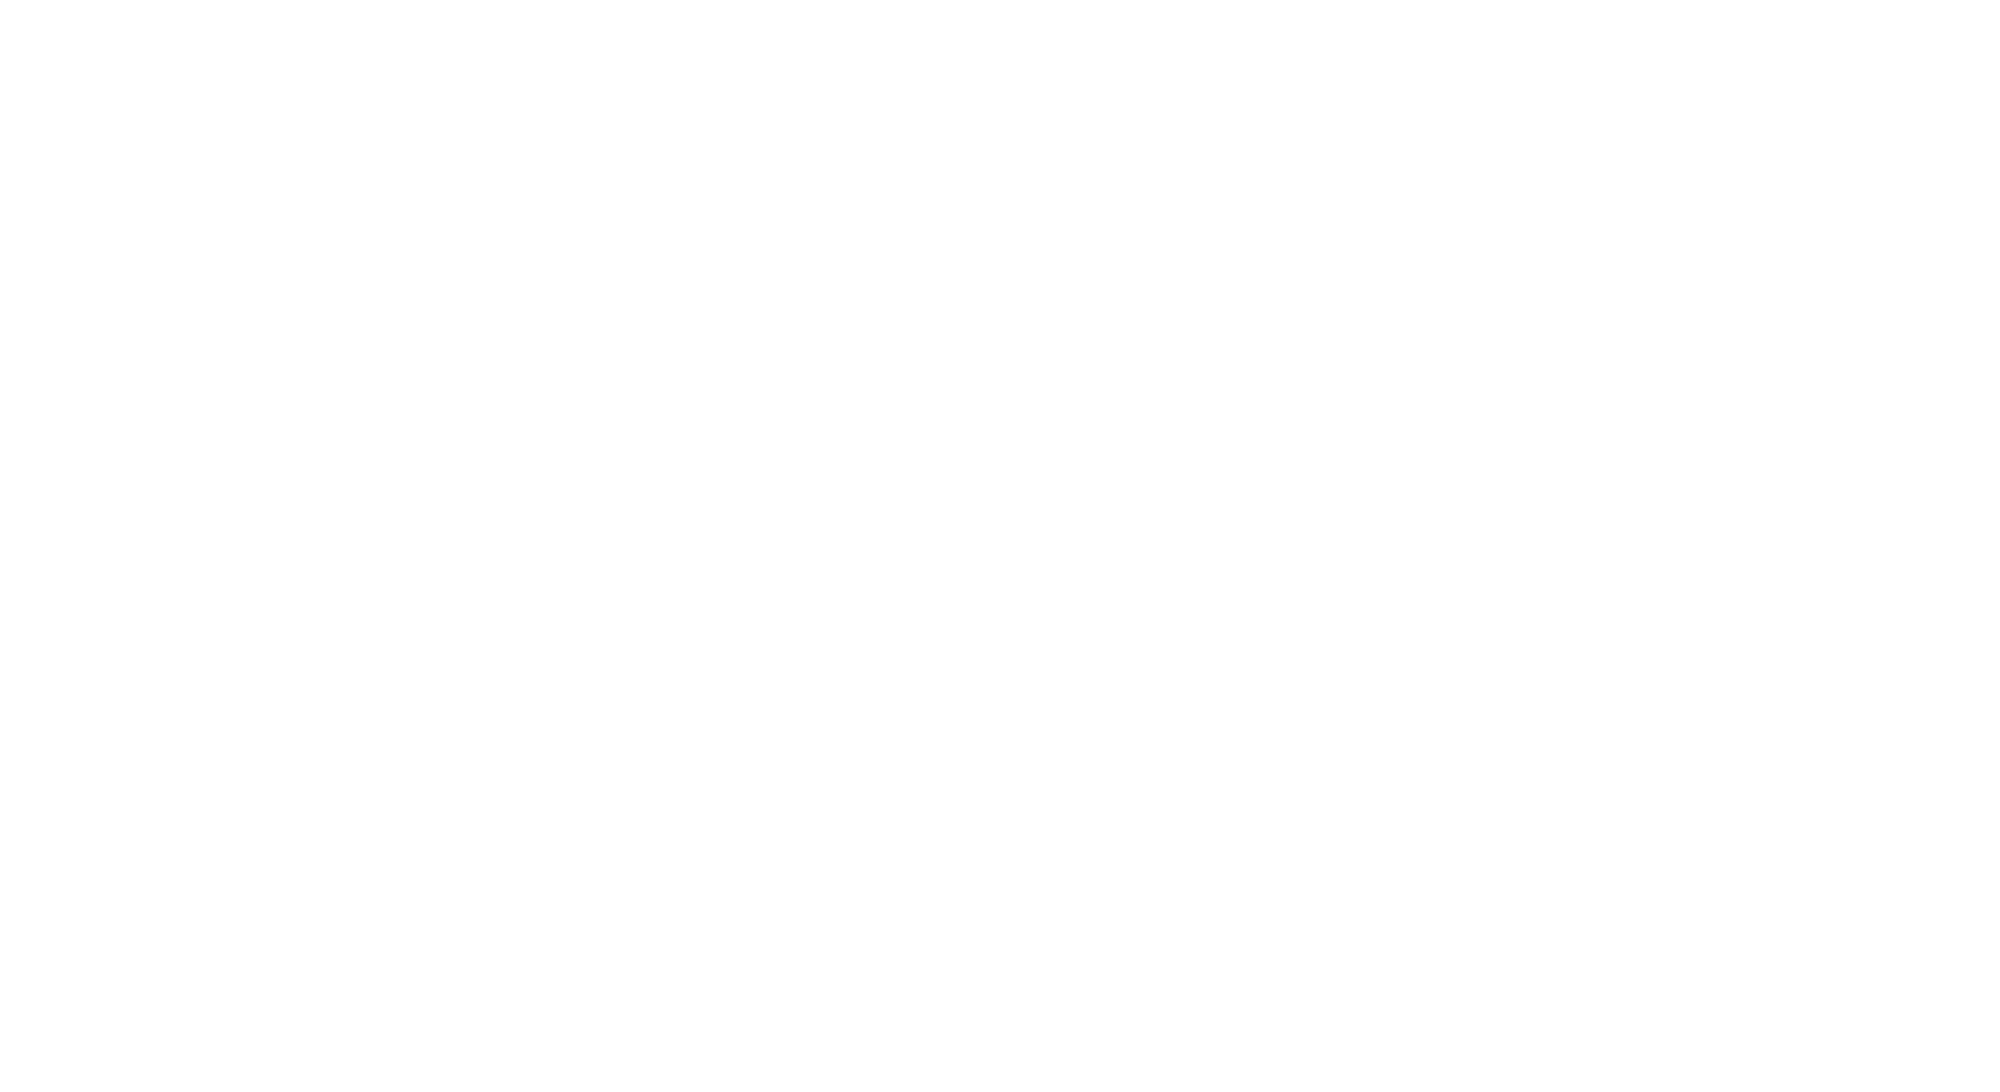 How it works-logo-white.png